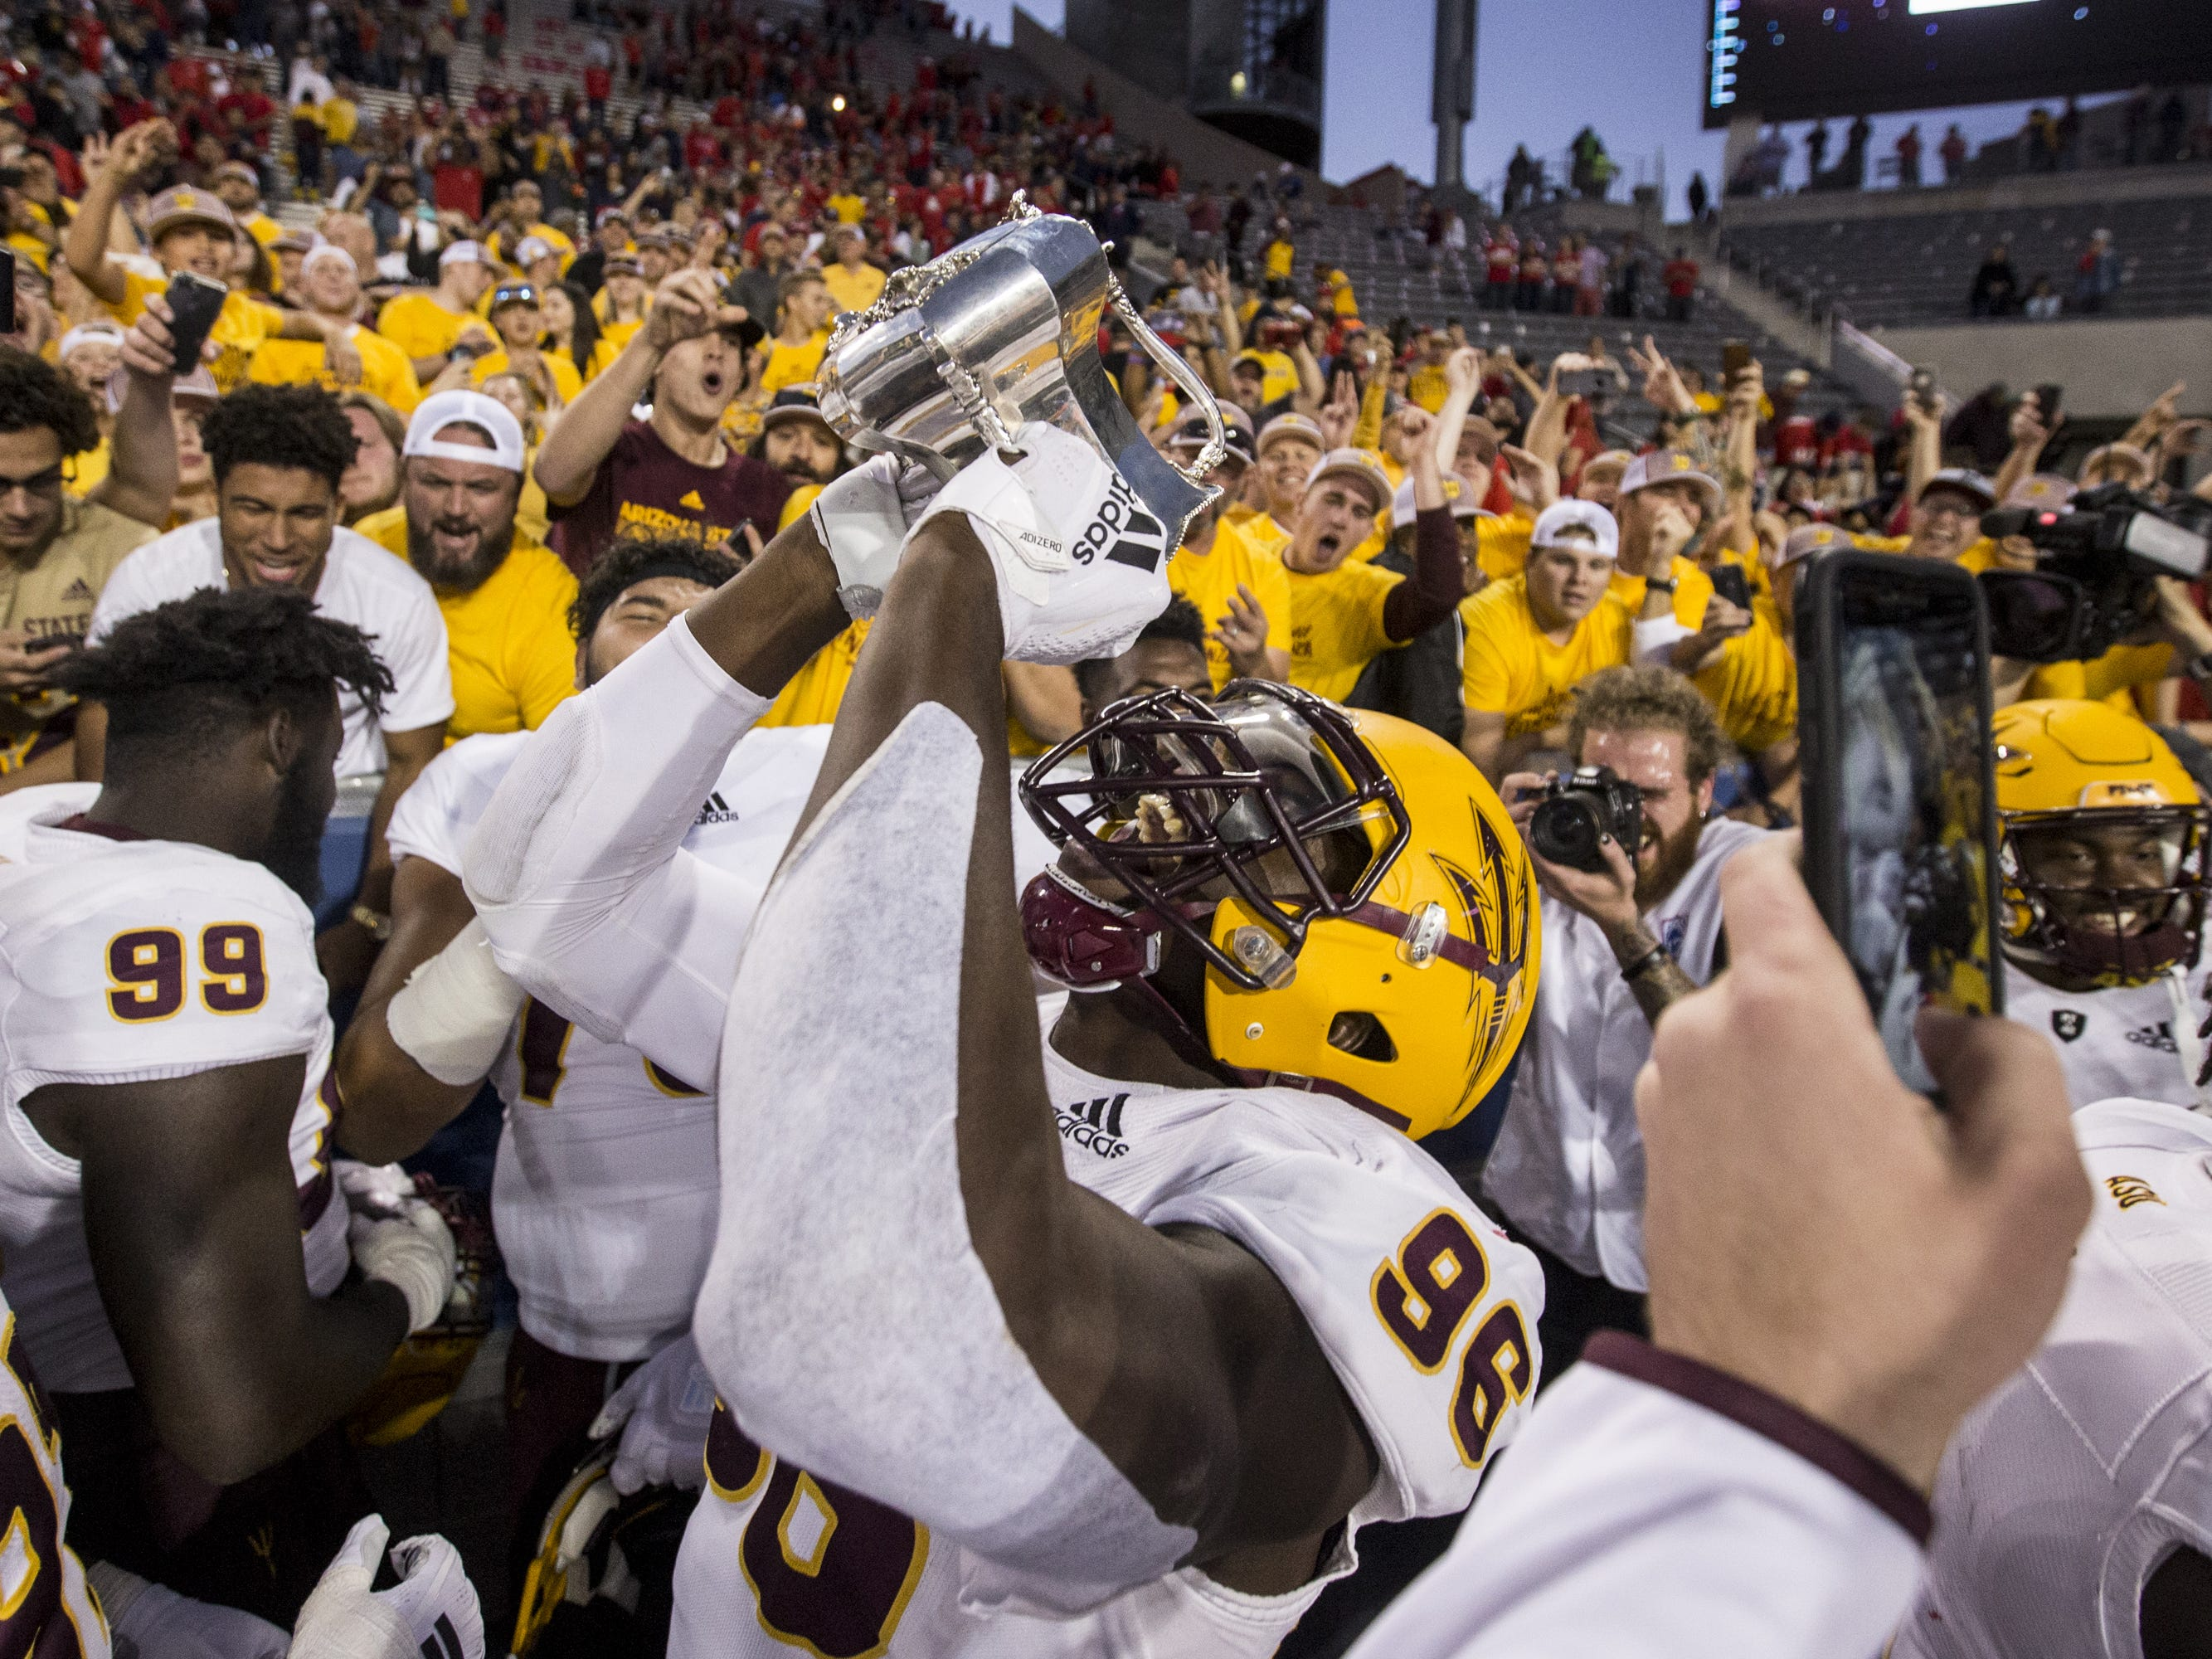 Arizona State's Jalen Bates celebrates after defeating Arizona for the Territorial Cup on Saturday, Nov. 24, 2018, at Arizona Stadium in Tucson, Ariz. Arizona State won, 41-40.